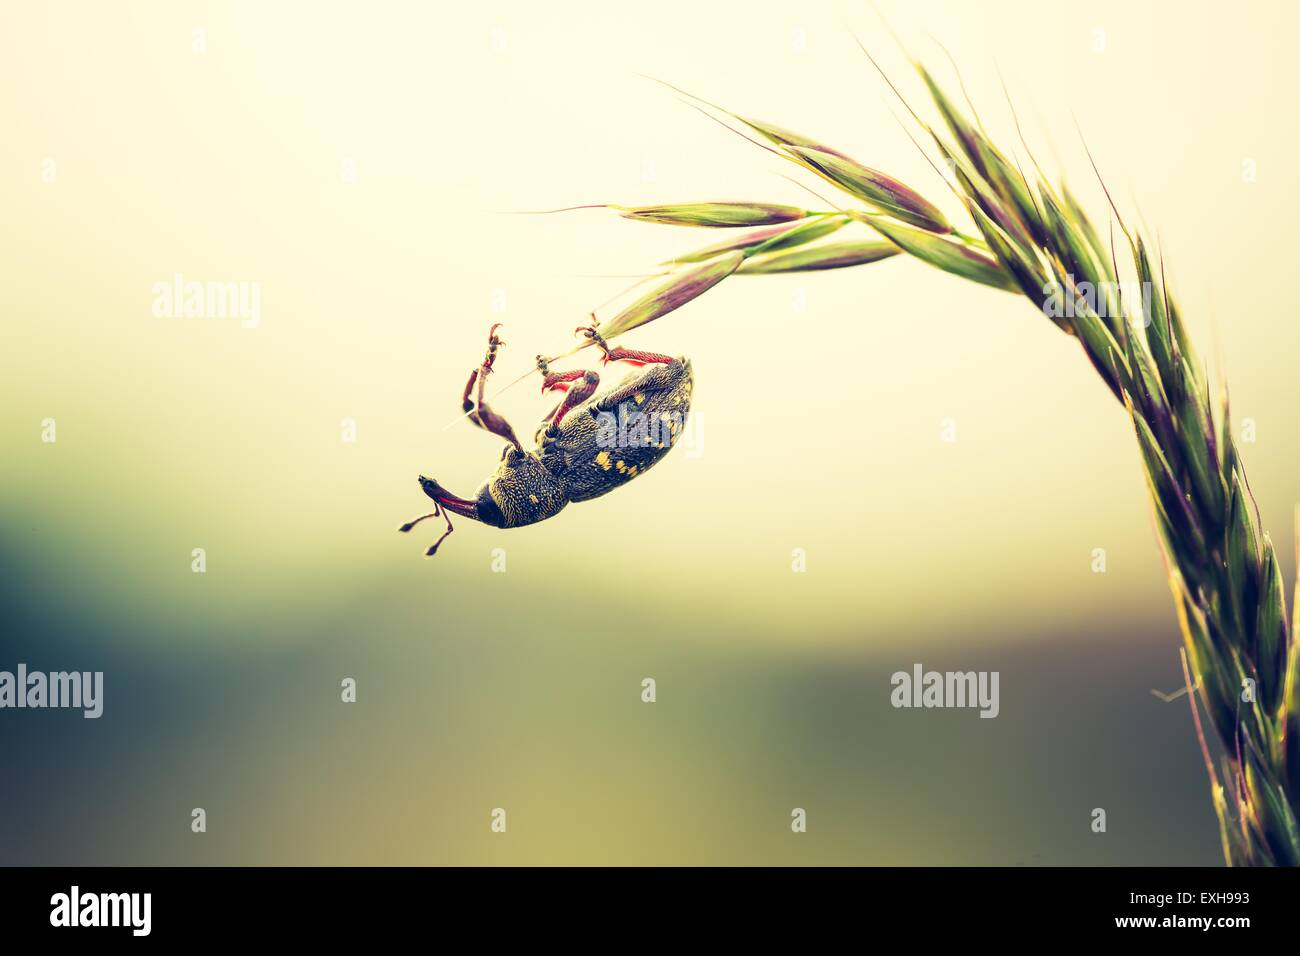 Close up of beetle sitting on plant. Beautiful natural macro of insect. - Stock Image